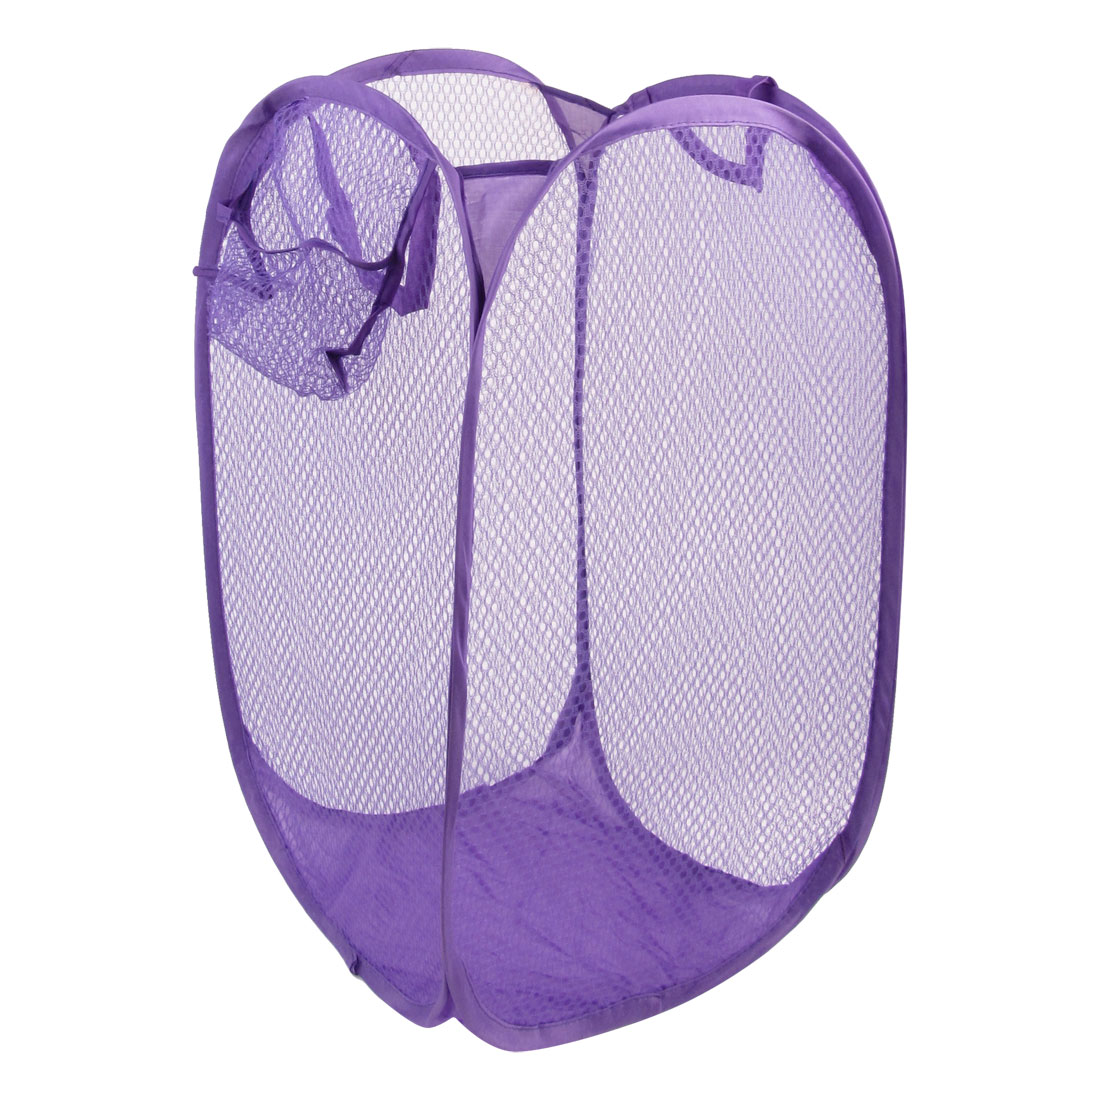 Mesh Design Pop up Bag Clothes Storage Foldable Laundry Basket Purple